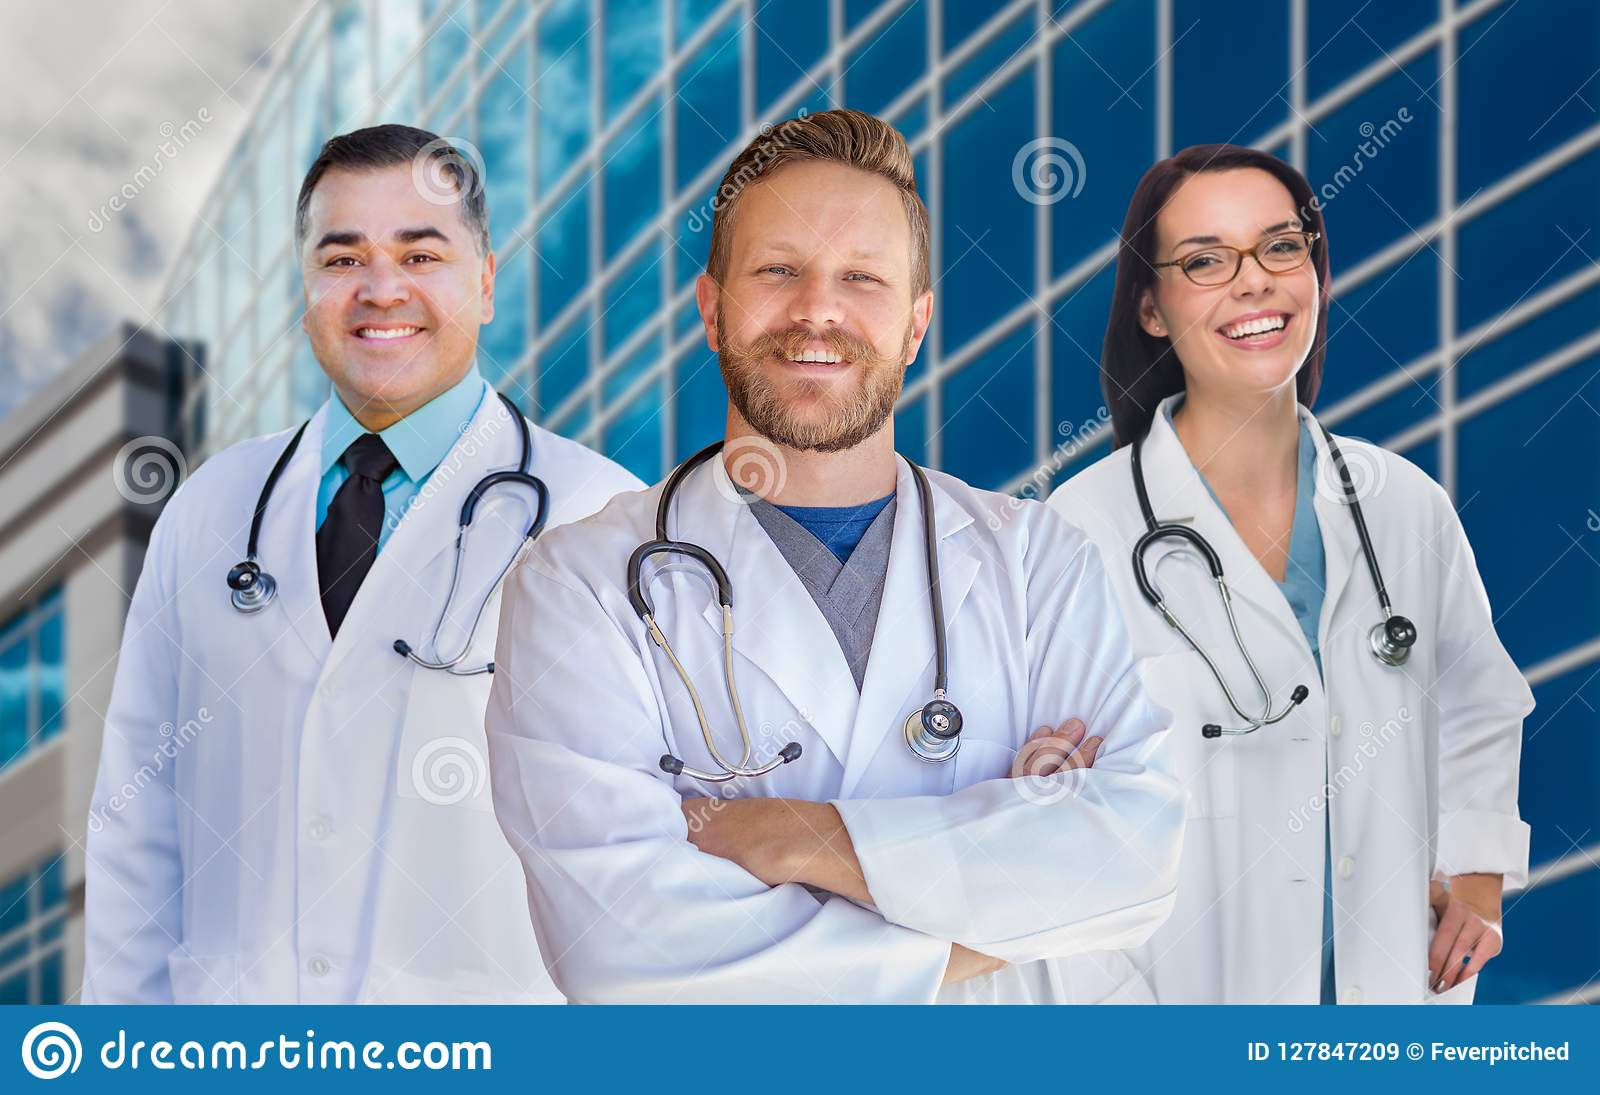 Group Of Mixed Race Male and Female Doctors or Nurses by Hospital